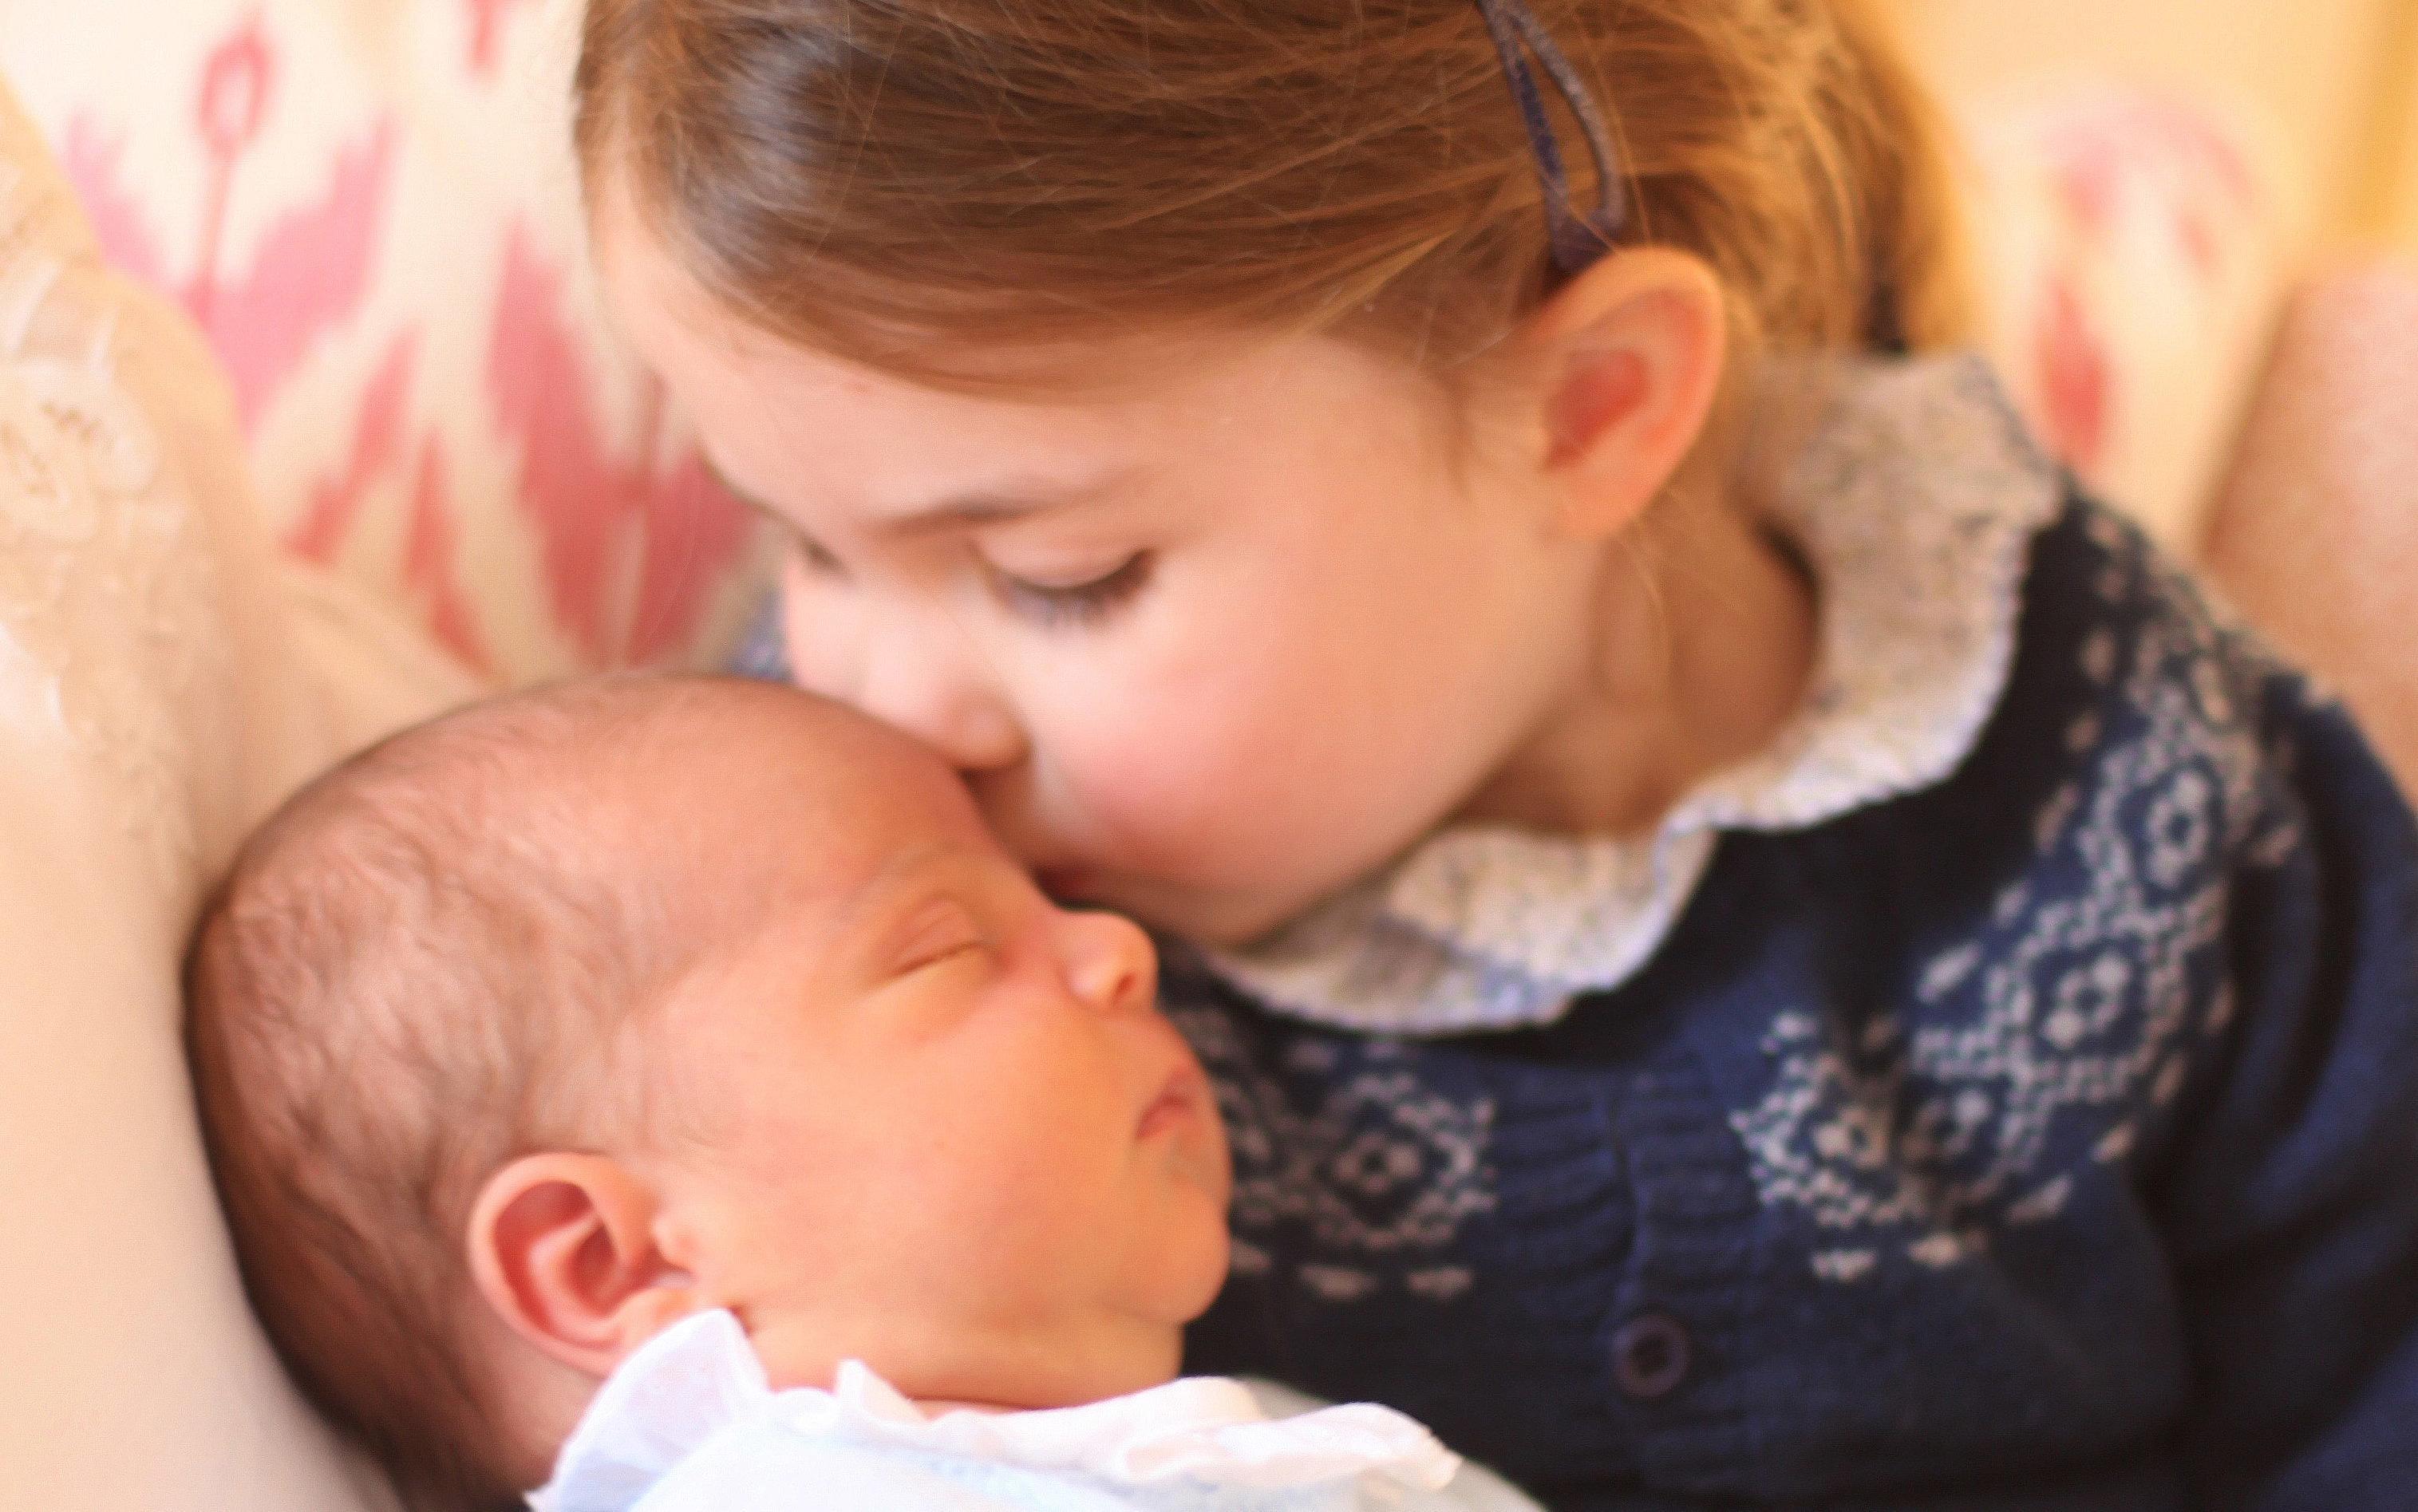 Princess Charlotte with her brother Prince Louis in a photo taken by the Duchess of Cambridge on Princess Charlotte's third birthday (HRH Duchess of Cambridge via Getty Images)